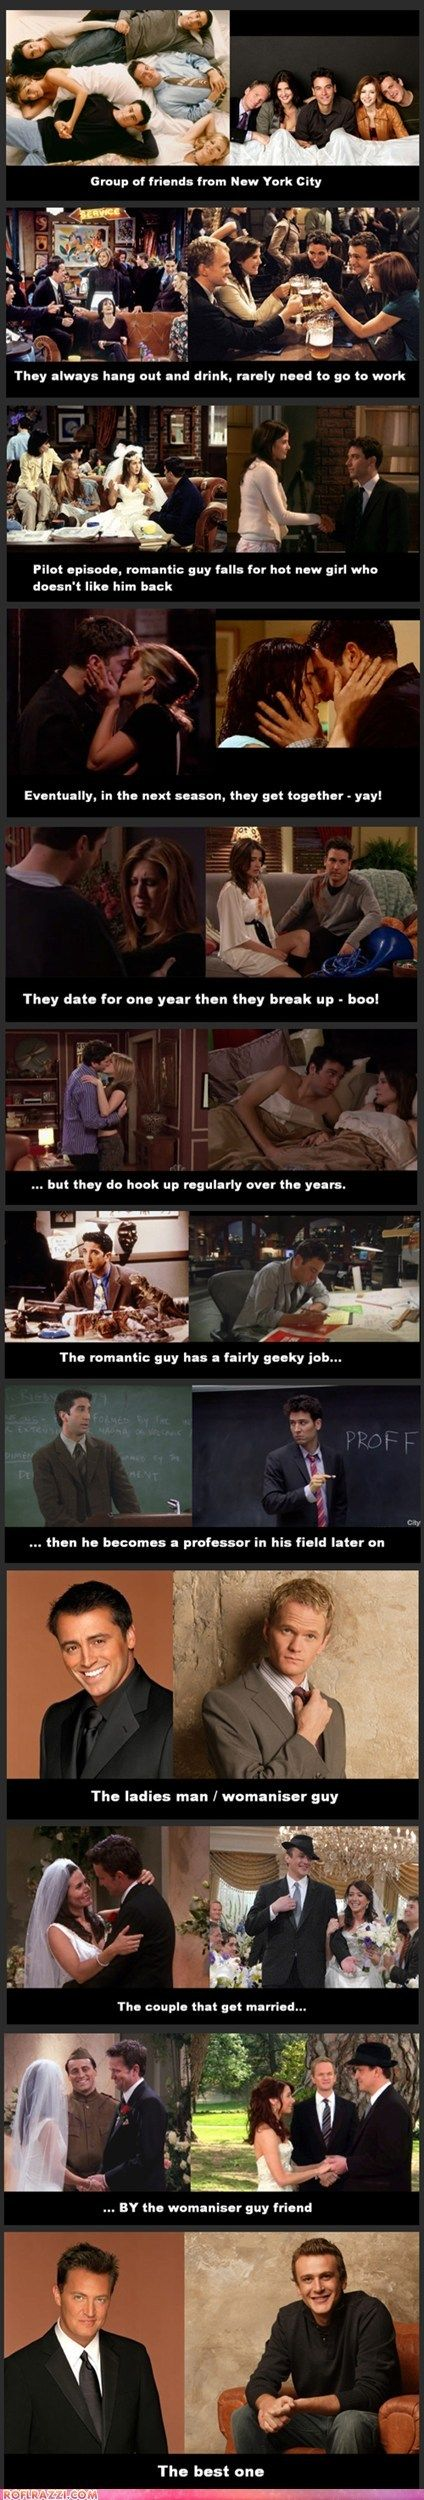 Friends vs How I Met Your Mother. How I met your mother is funny but it really can't compete with friends.